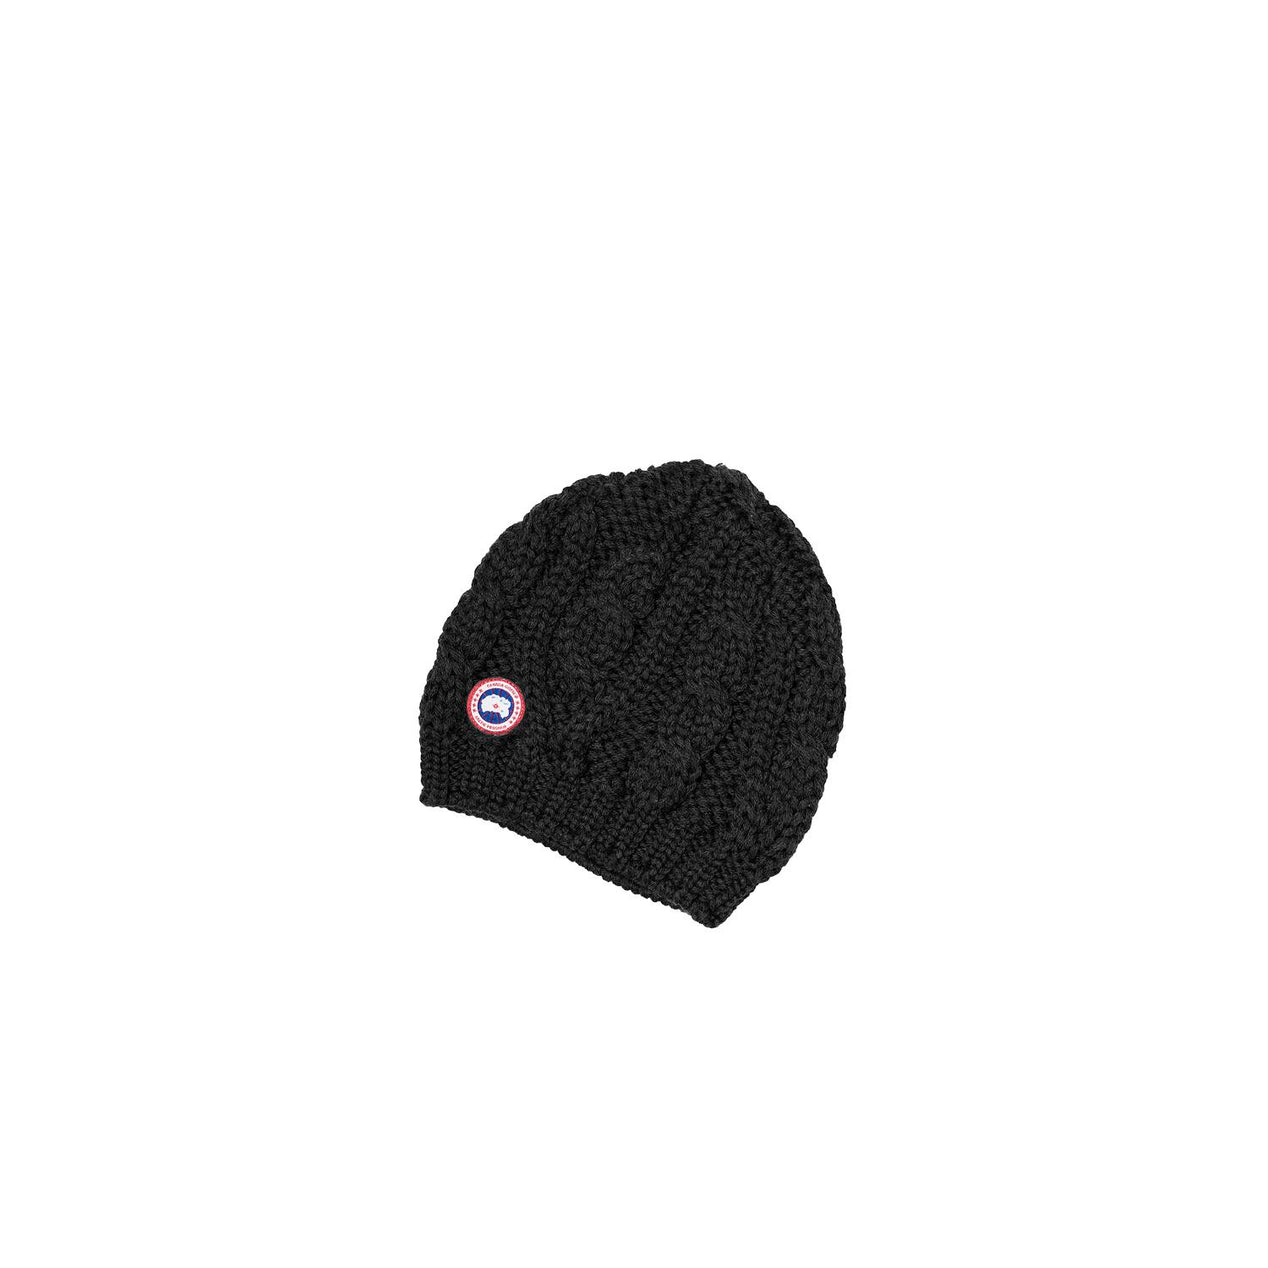 347fd74c65c Canada Goose Women s Chunky Cable Knit Beanie